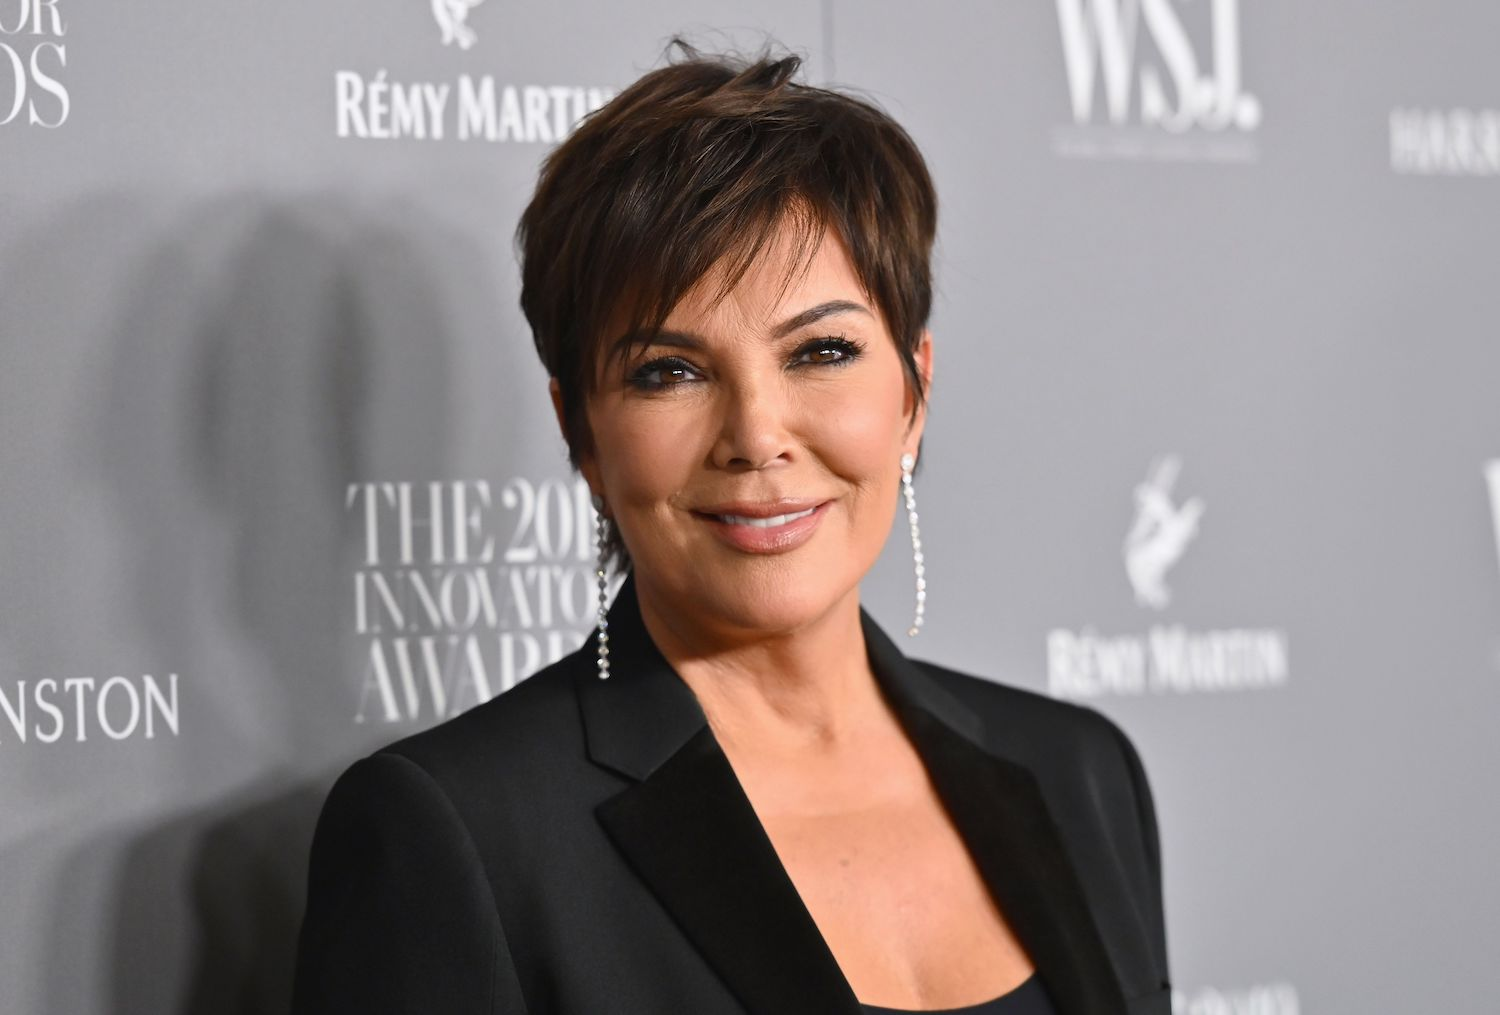 Kris Jenner Talks About Sudden Decision To End KUTWK